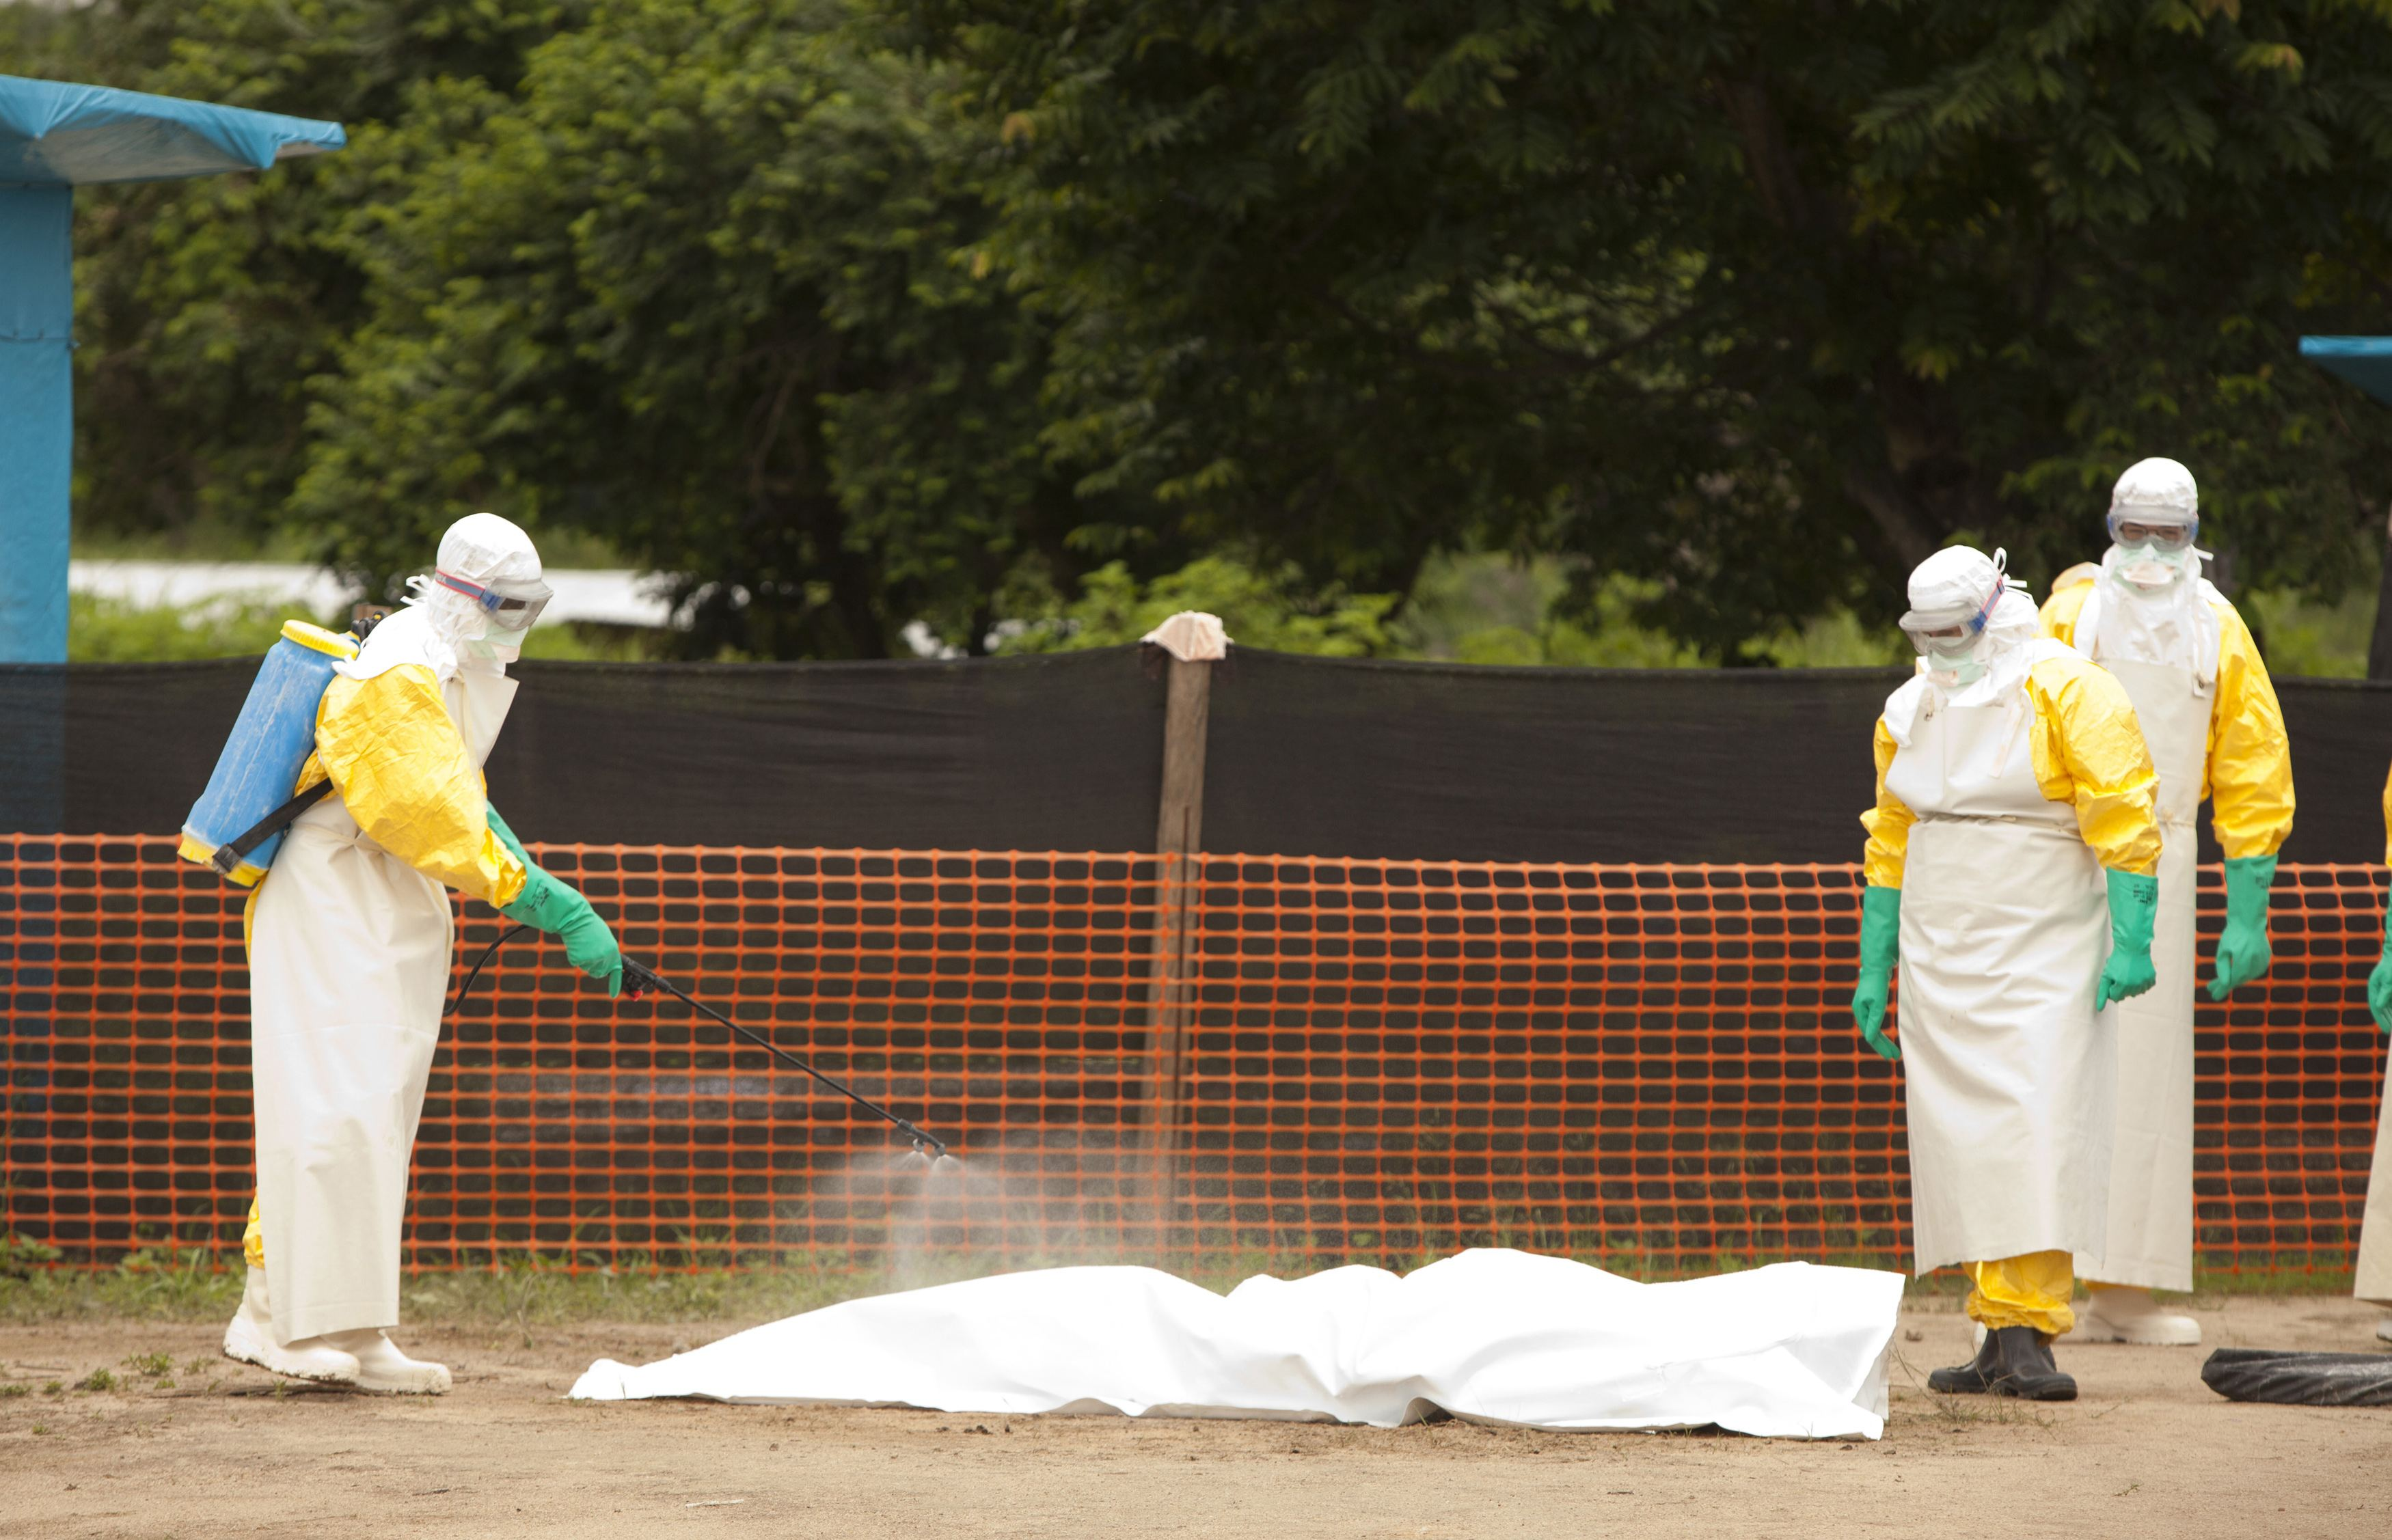 Ebola now blamed for 729 deaths in West Africa - CBS News